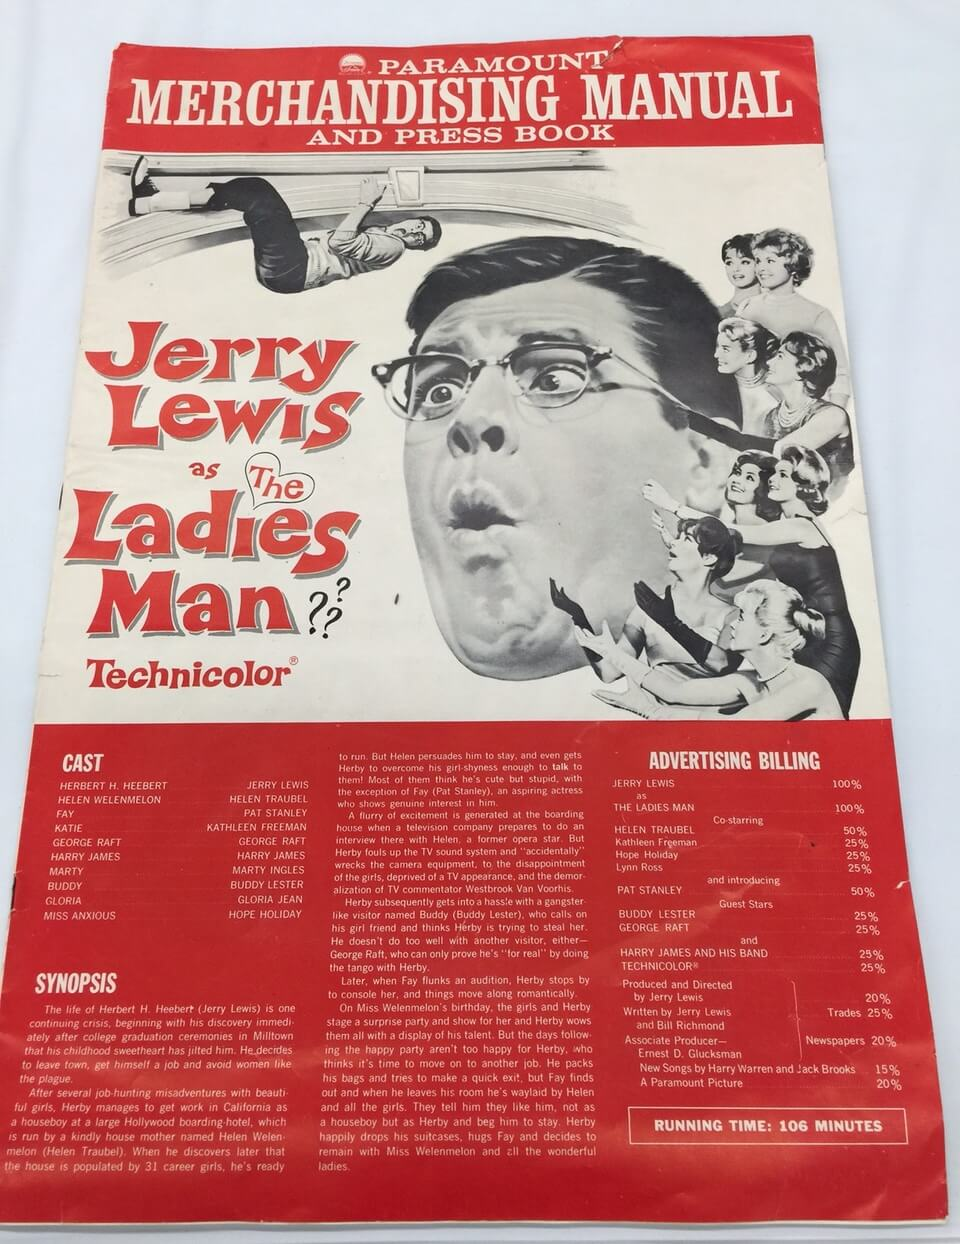 Paramount Studios 1961 Press Book & Merchandising Manual for Jerry Lewis Movie